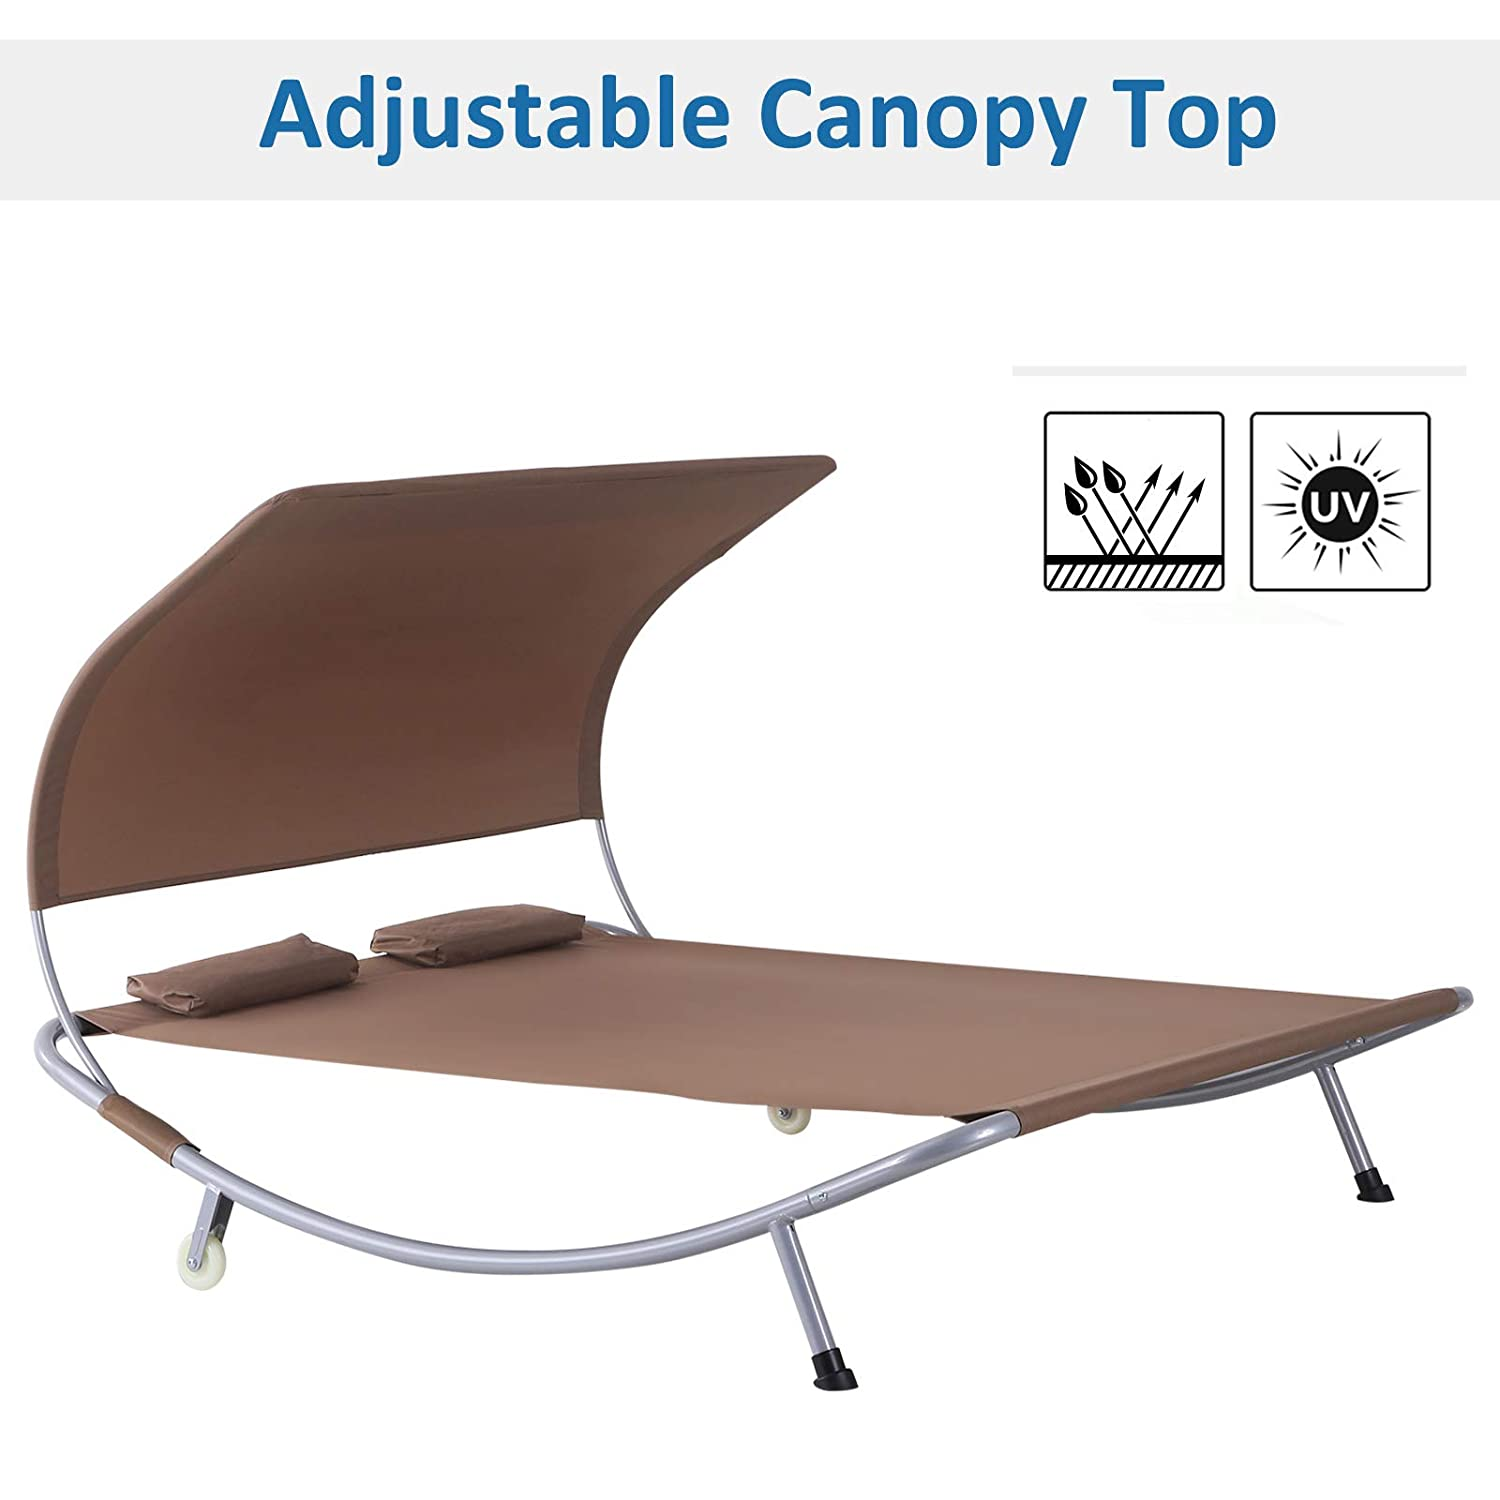 Outsunny 79 Double Sun Lounger Outdoor Hammock Bed Relaxing Chaise Lounge Sleeping Bed w//Pillow and Canopy